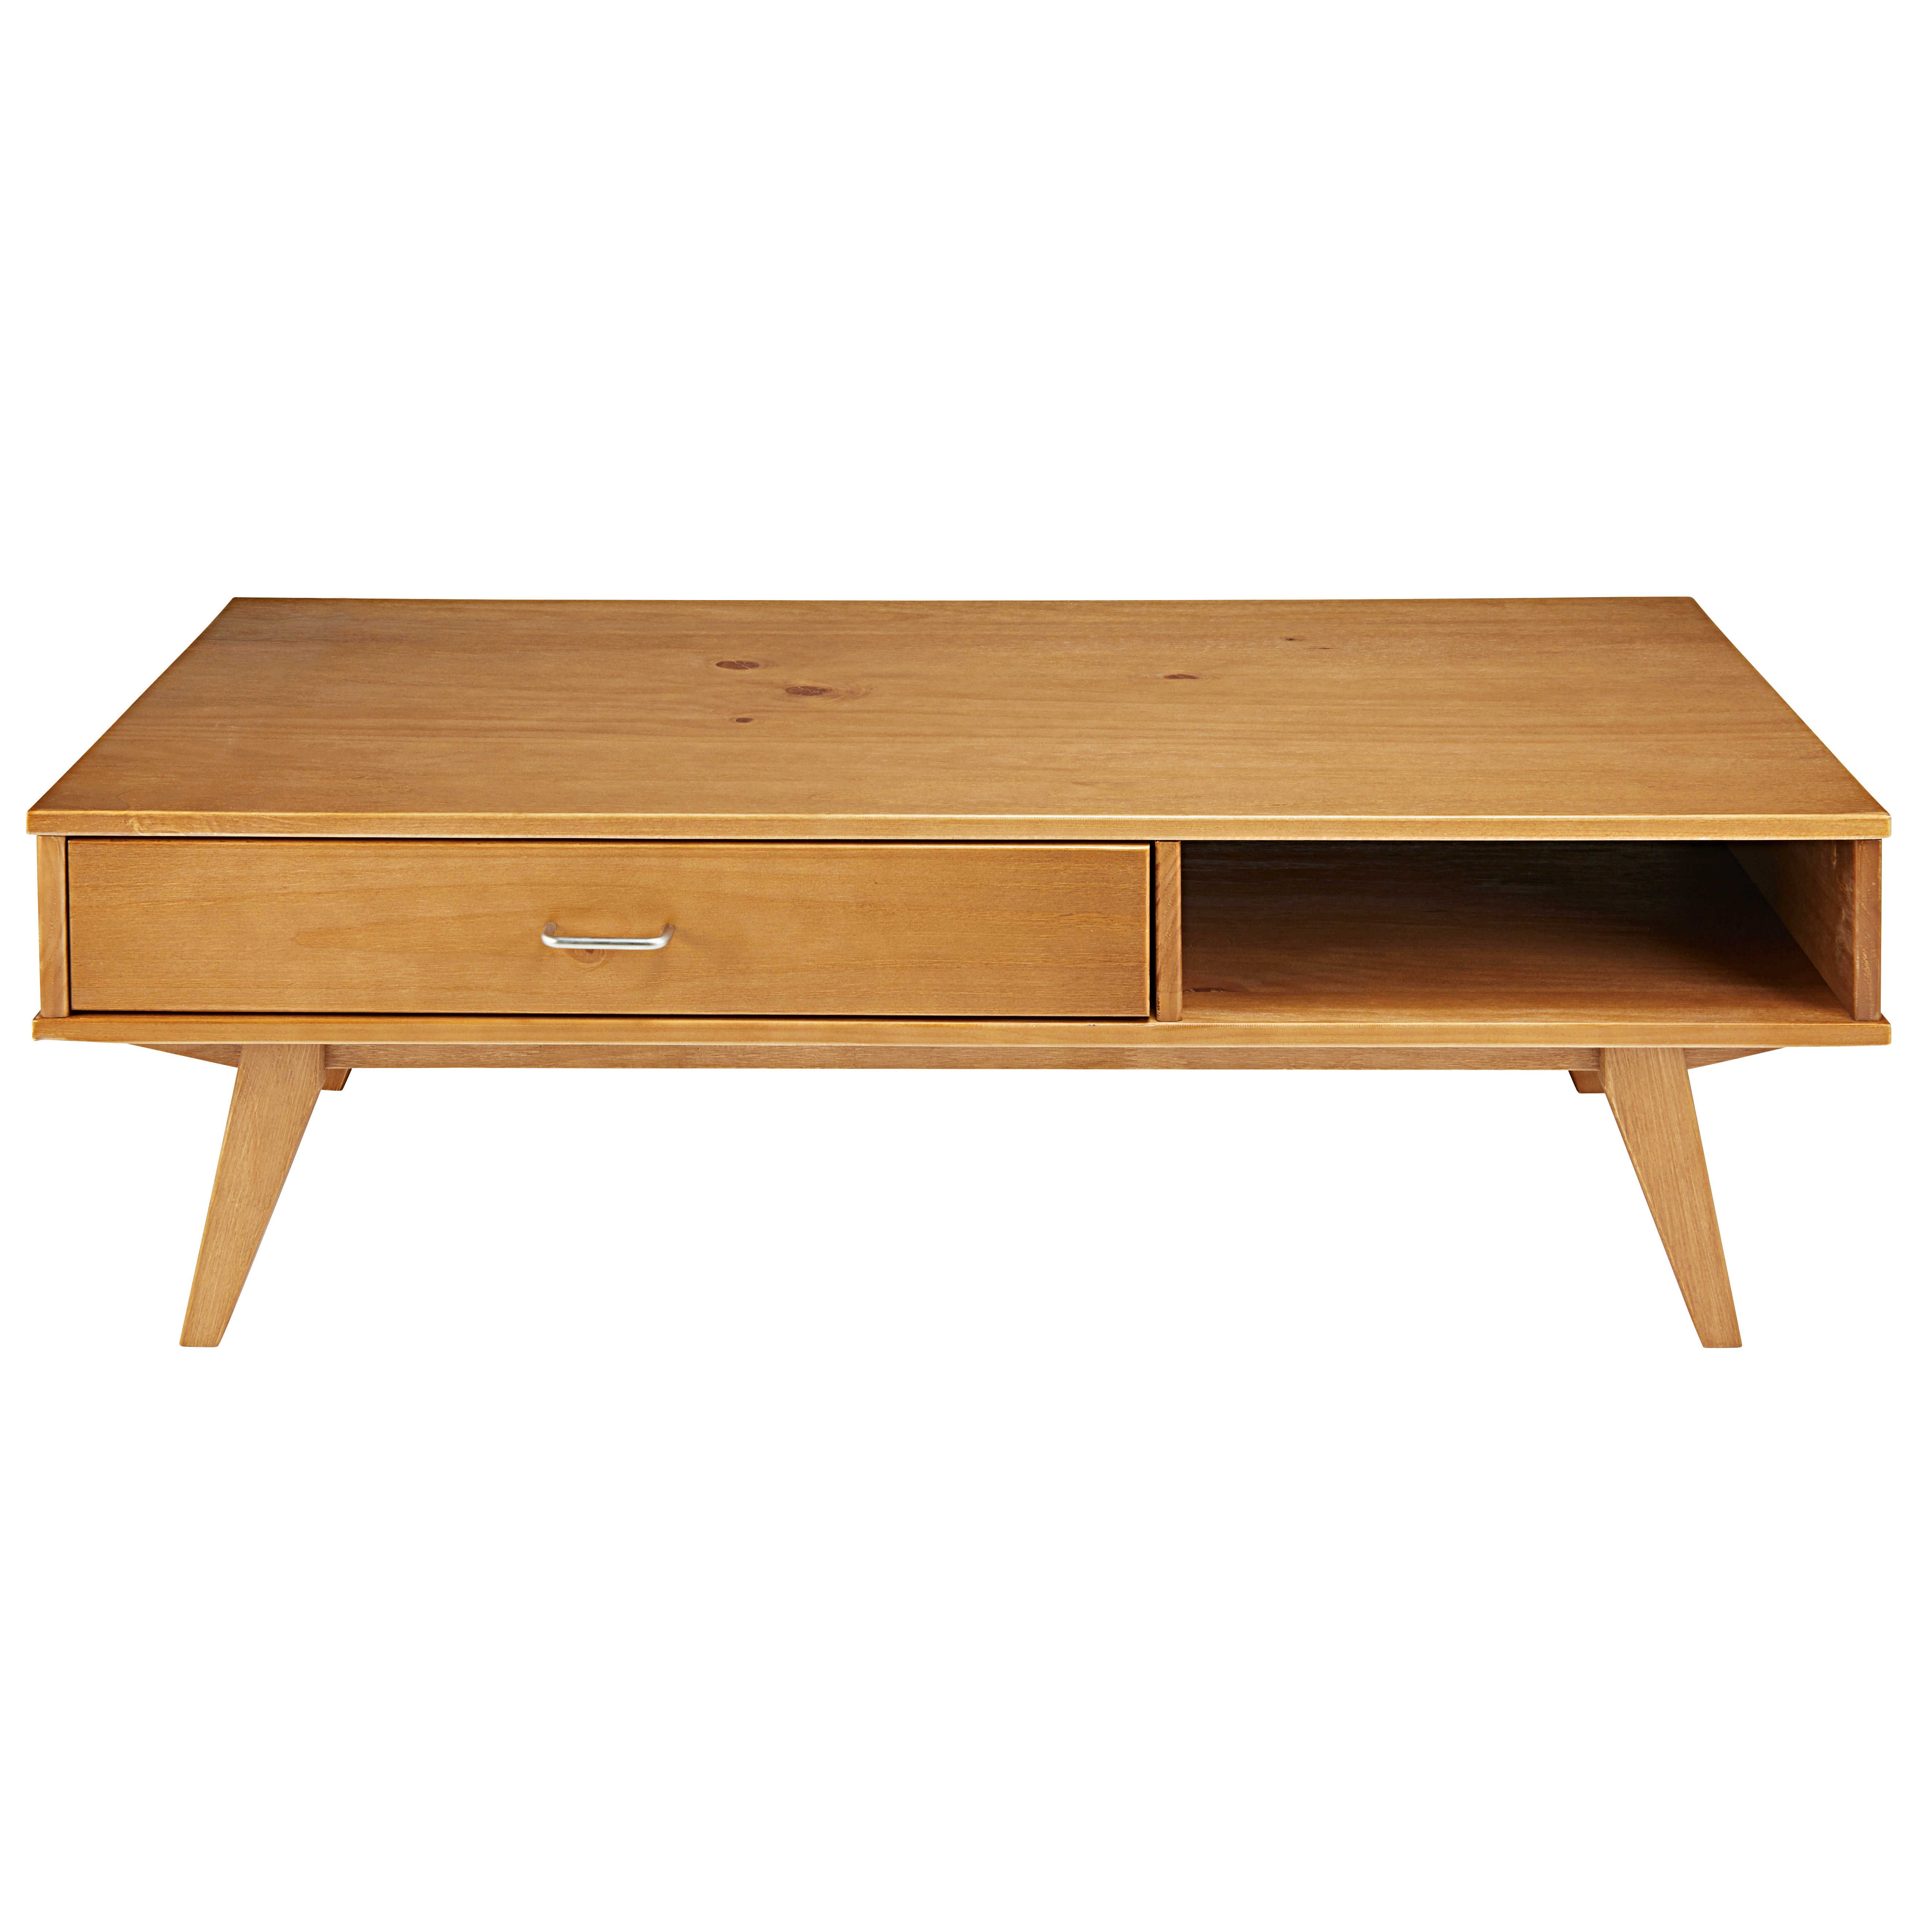 Table Basse 1 Tiroir Paulette Meuble Tv Pinterest Wood Couchtisch Loca